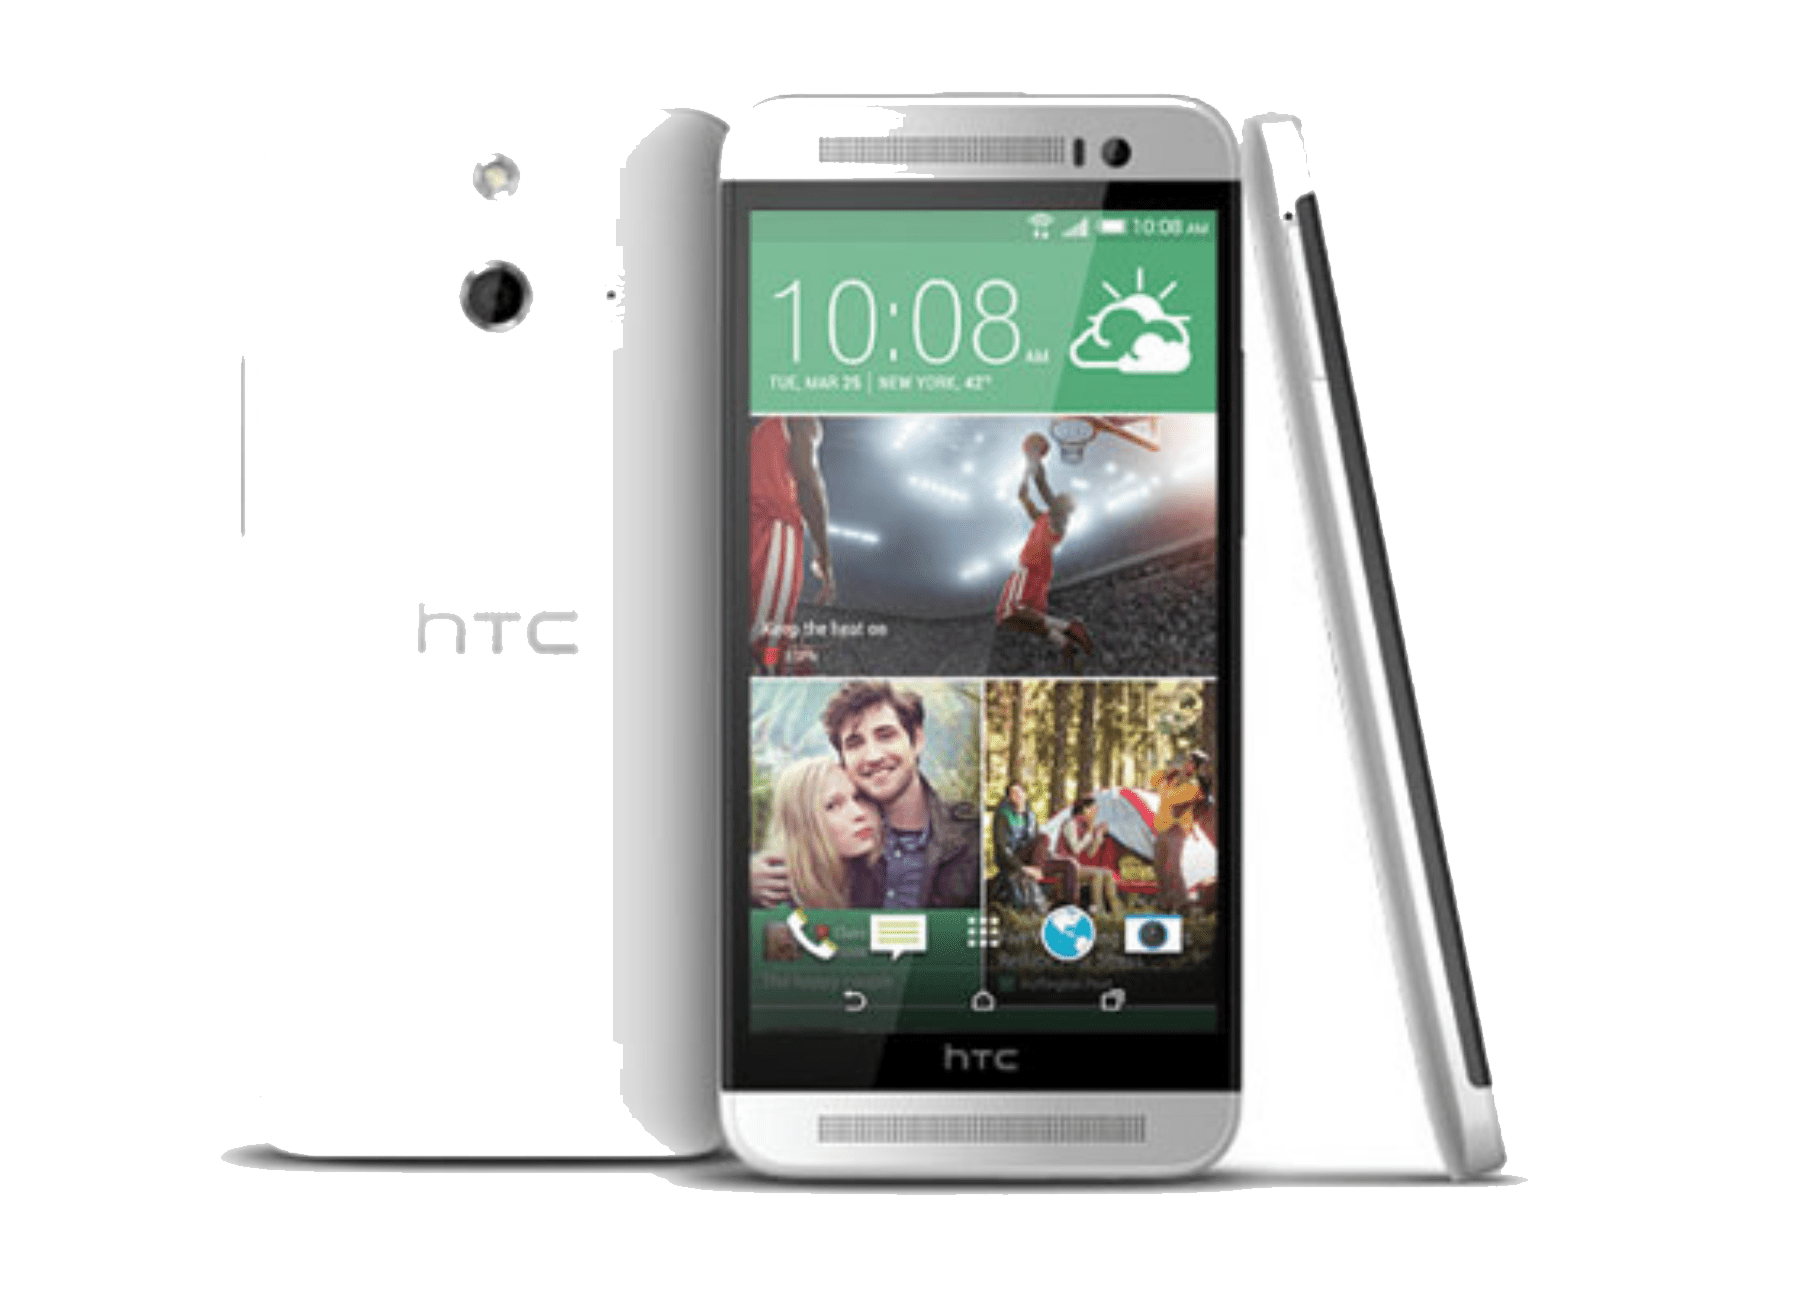 HTC One E8 smartphones, seen from back, front, and side